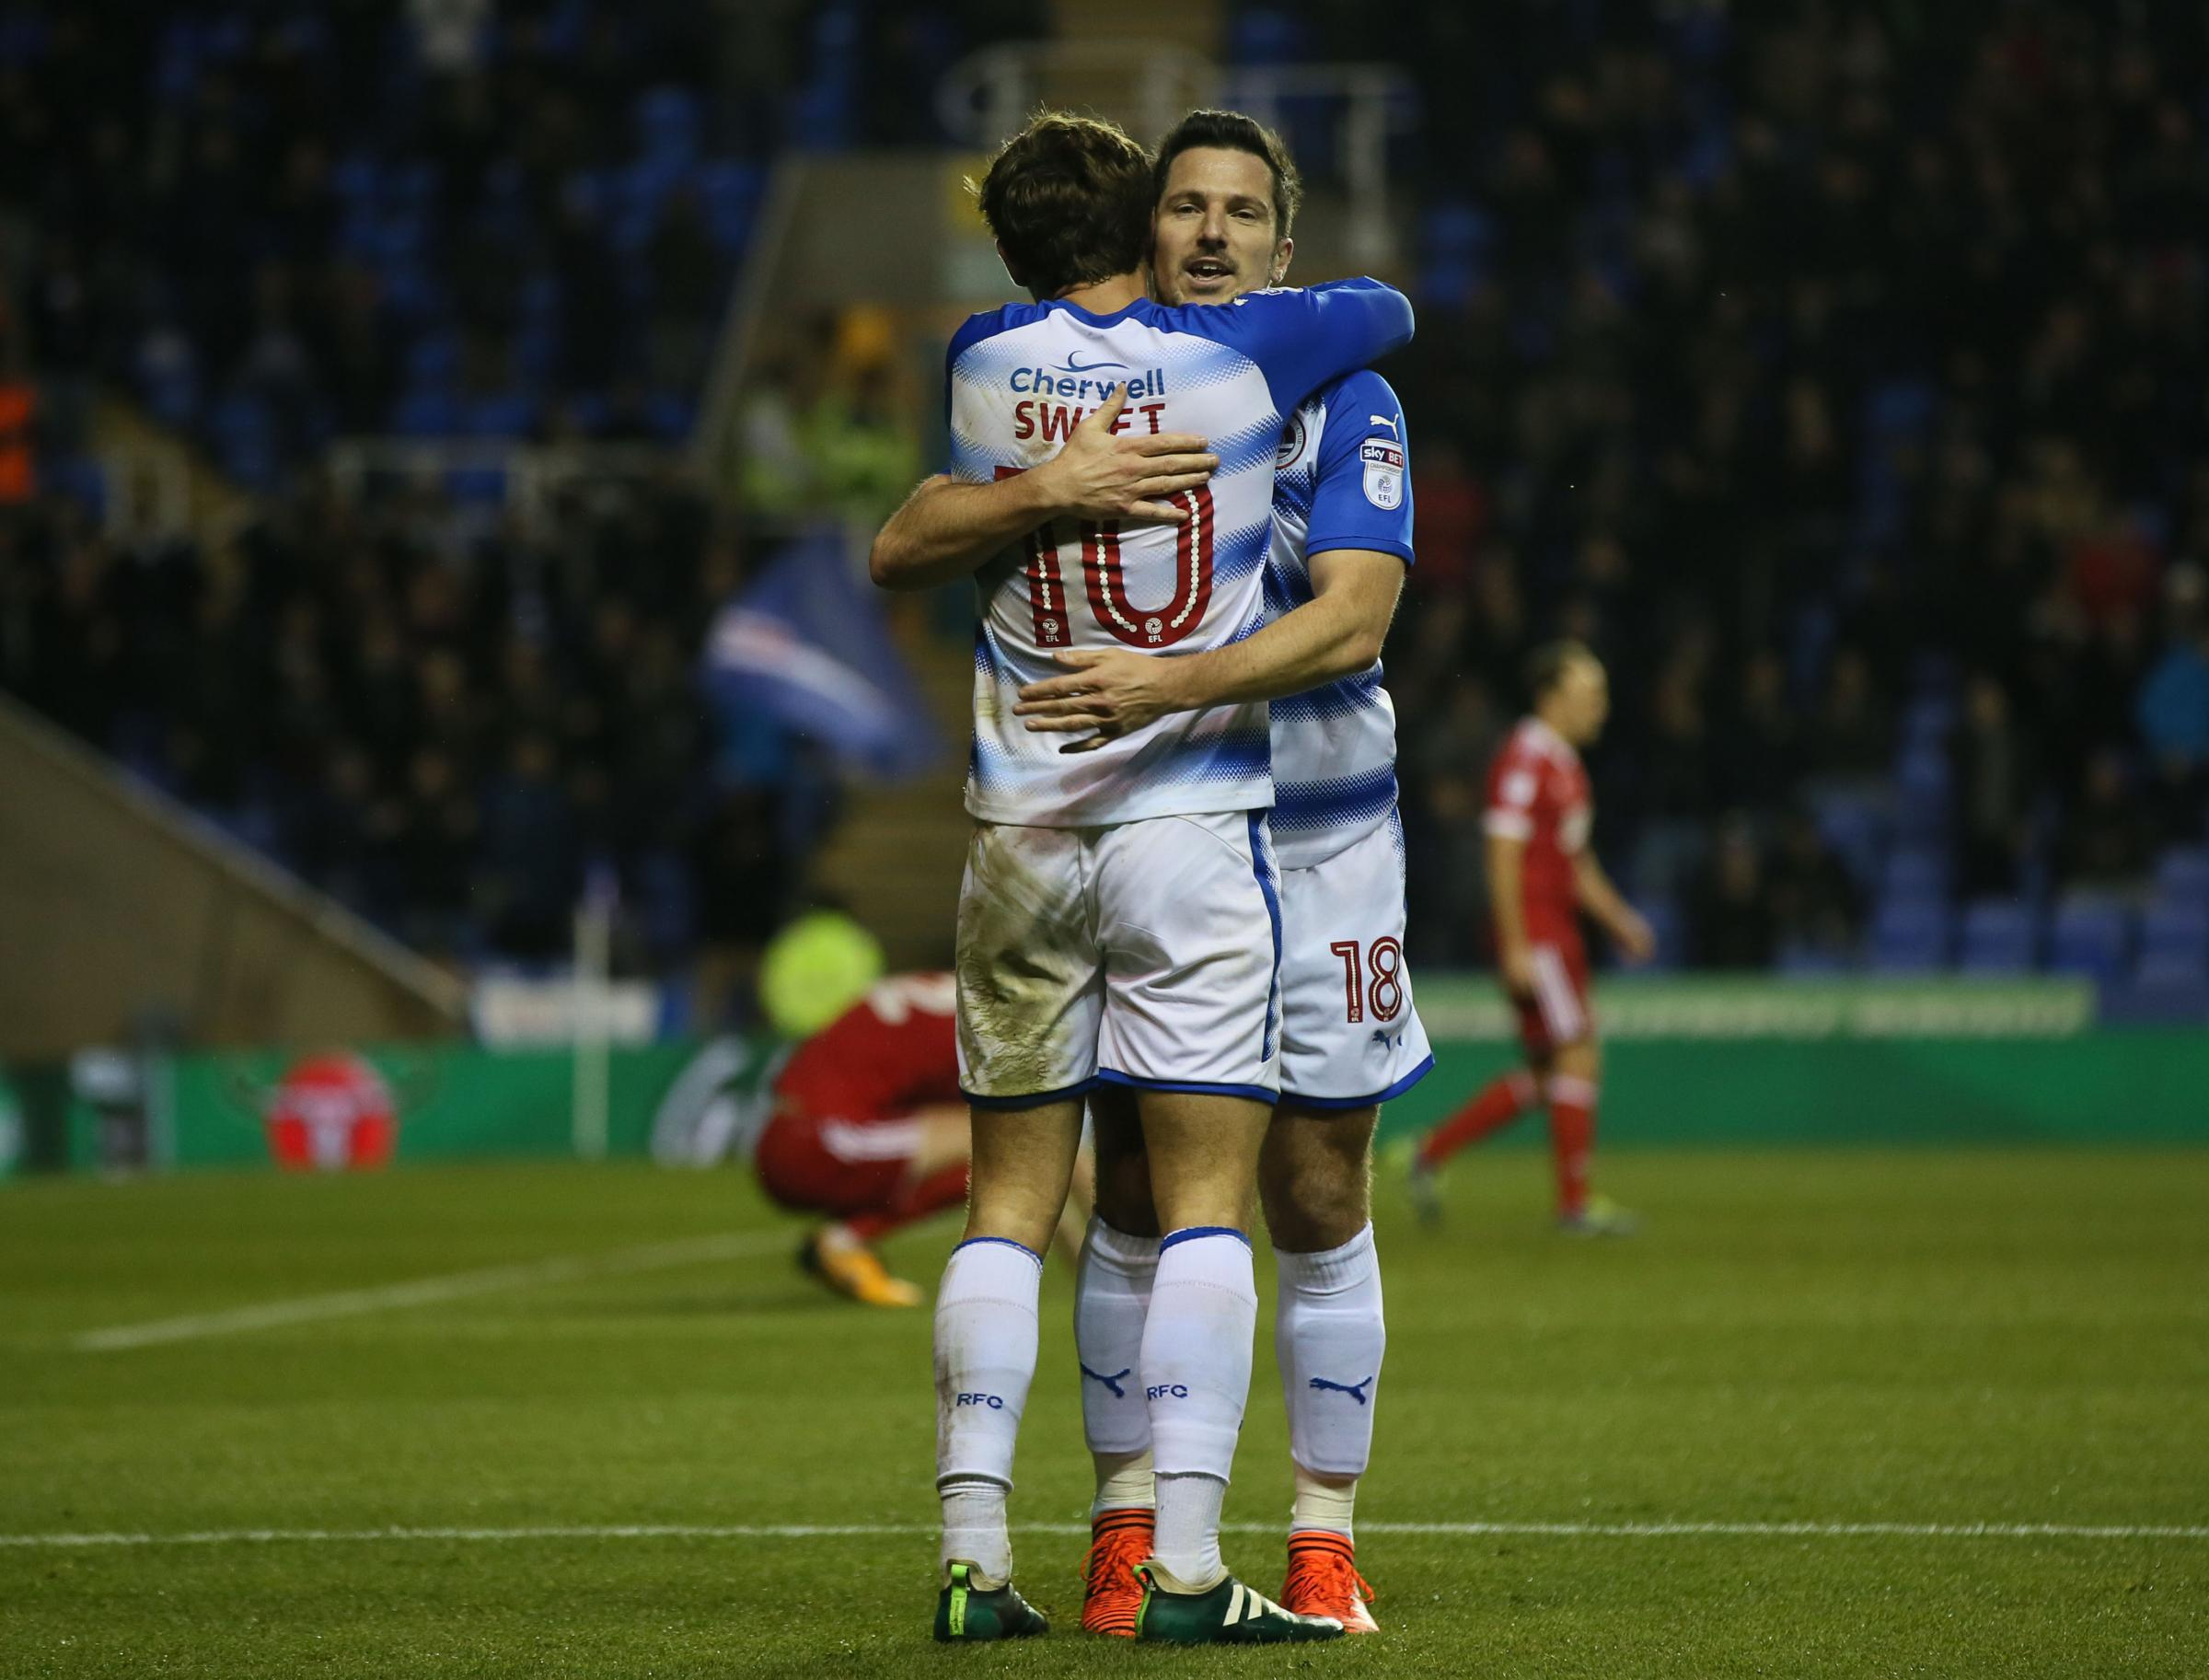 Yann Kermorgant, who signed a new deal today, hugs John Swift after last night's 3-1 win against Nottingham Forest. Picture: Ian Morsman.